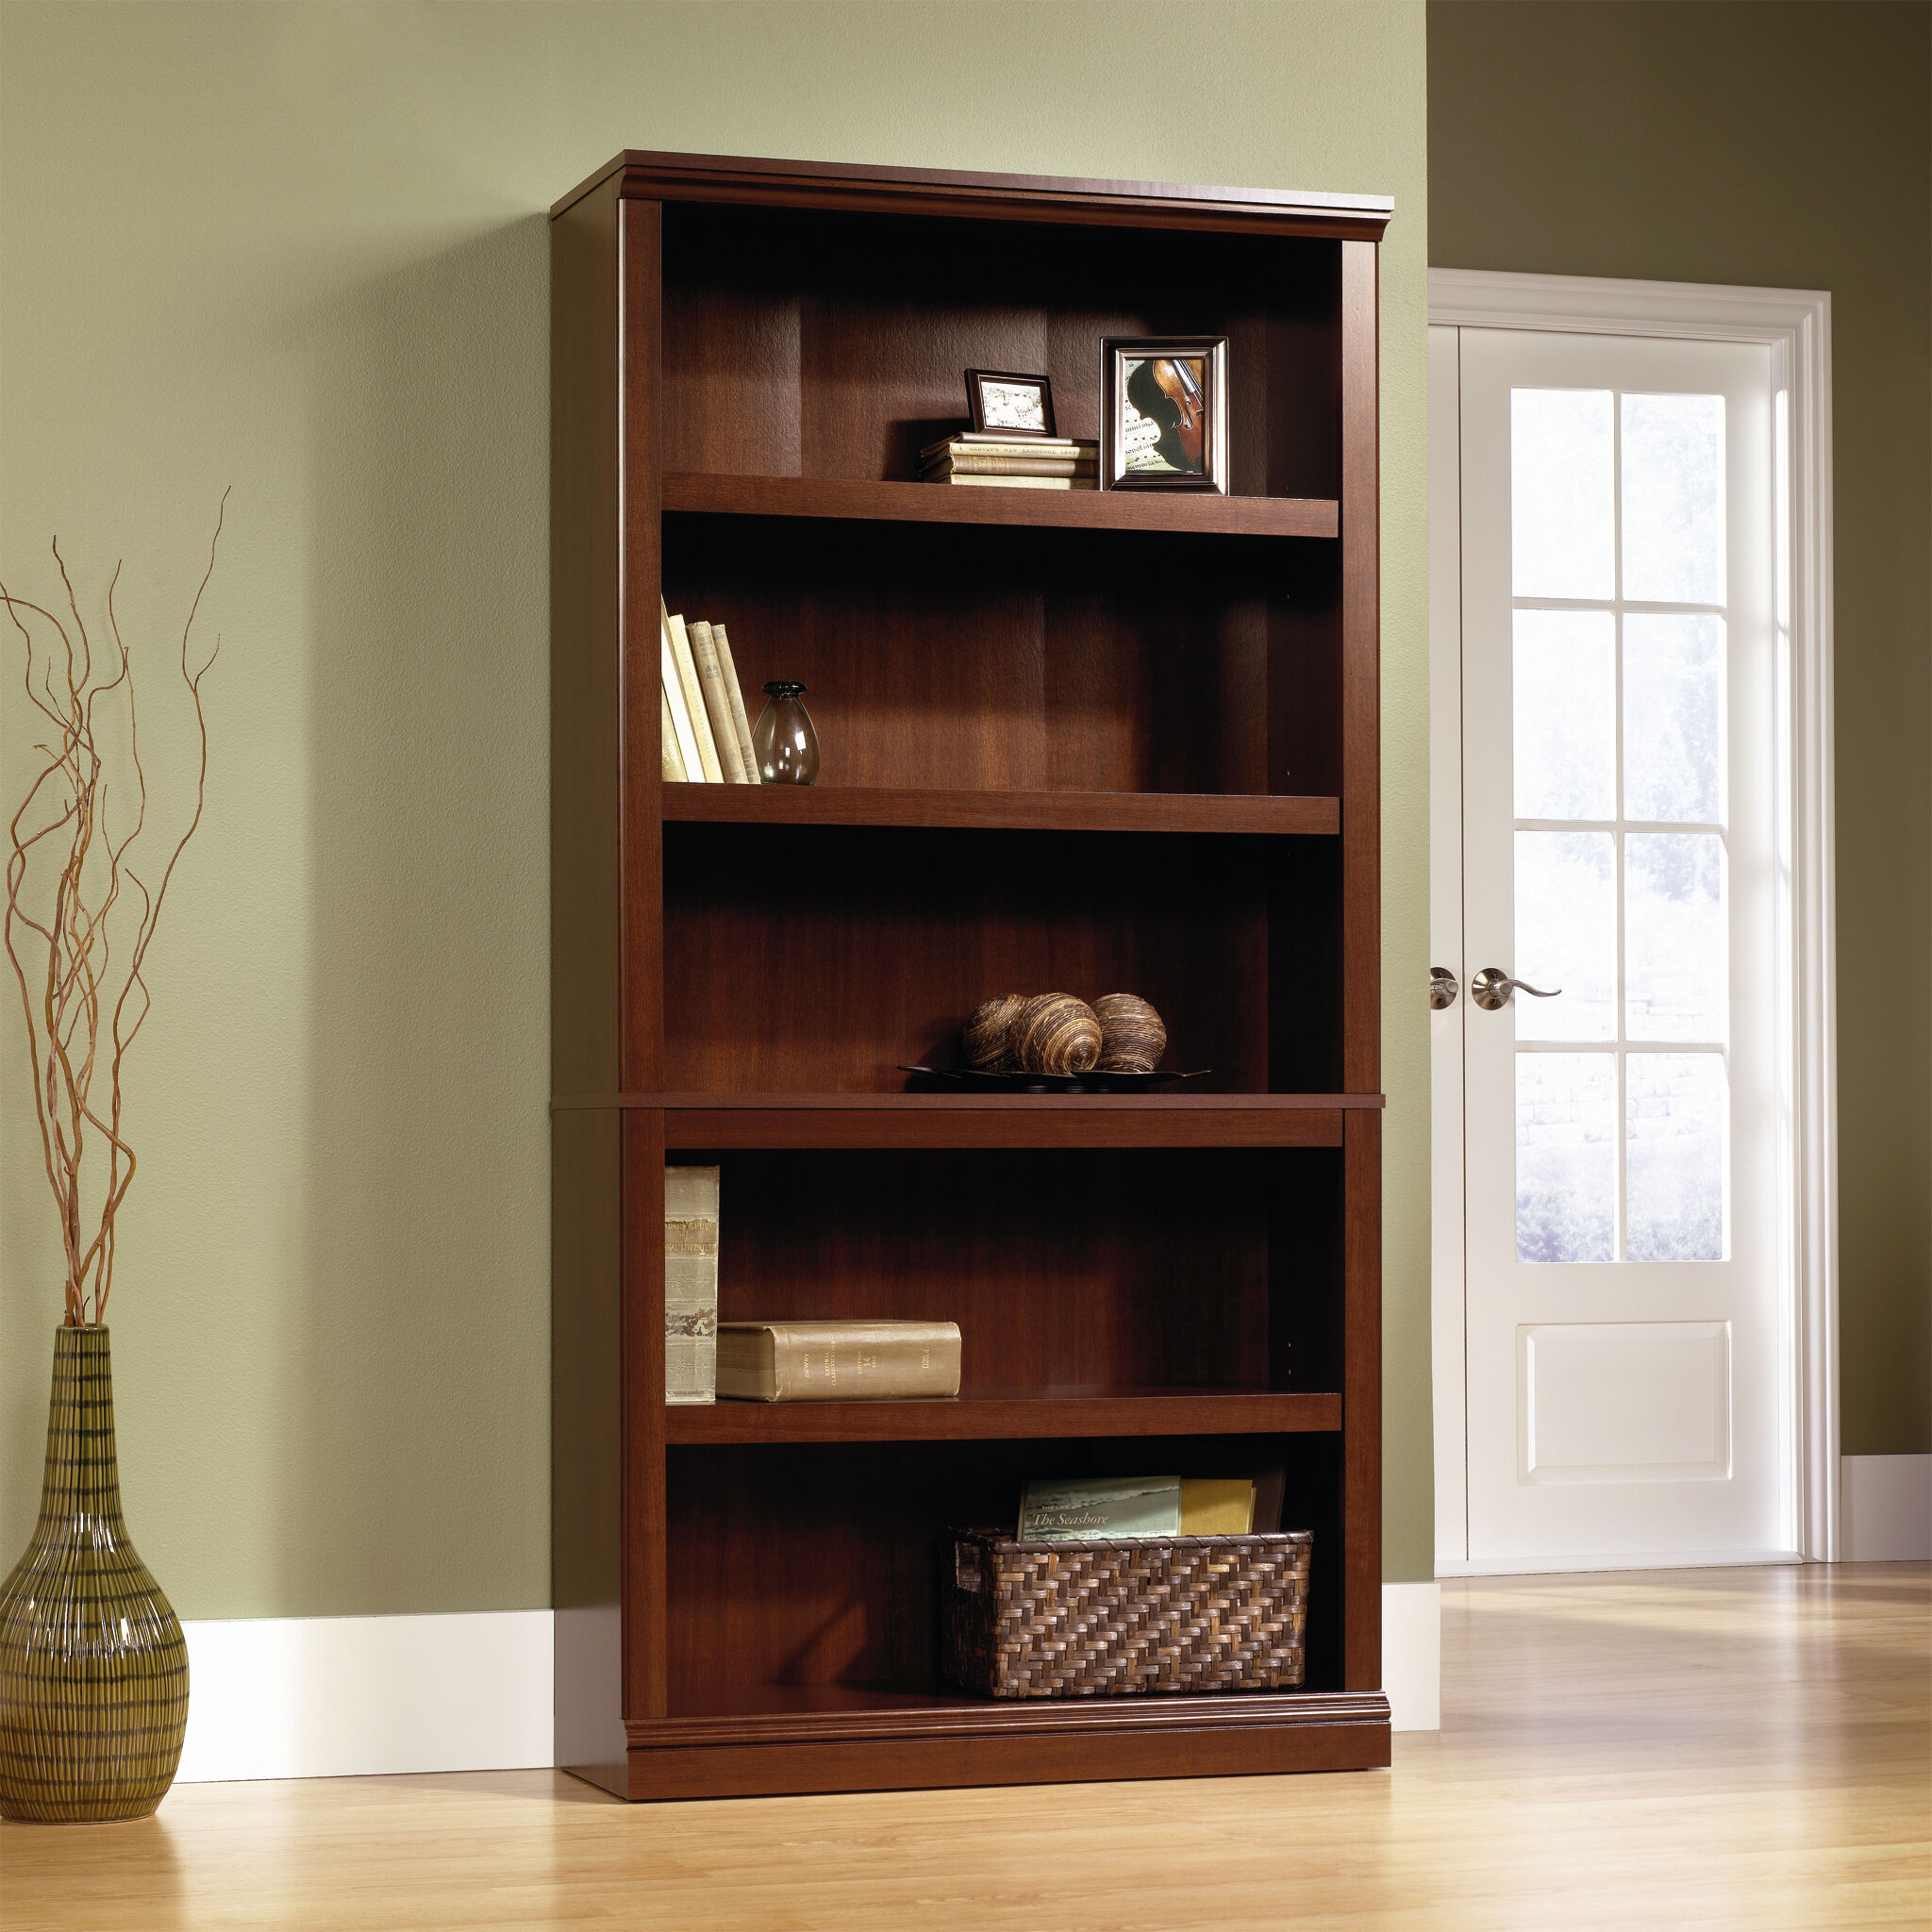 Images Transitional Adjustable Shelf Bookcase In Select Cherry